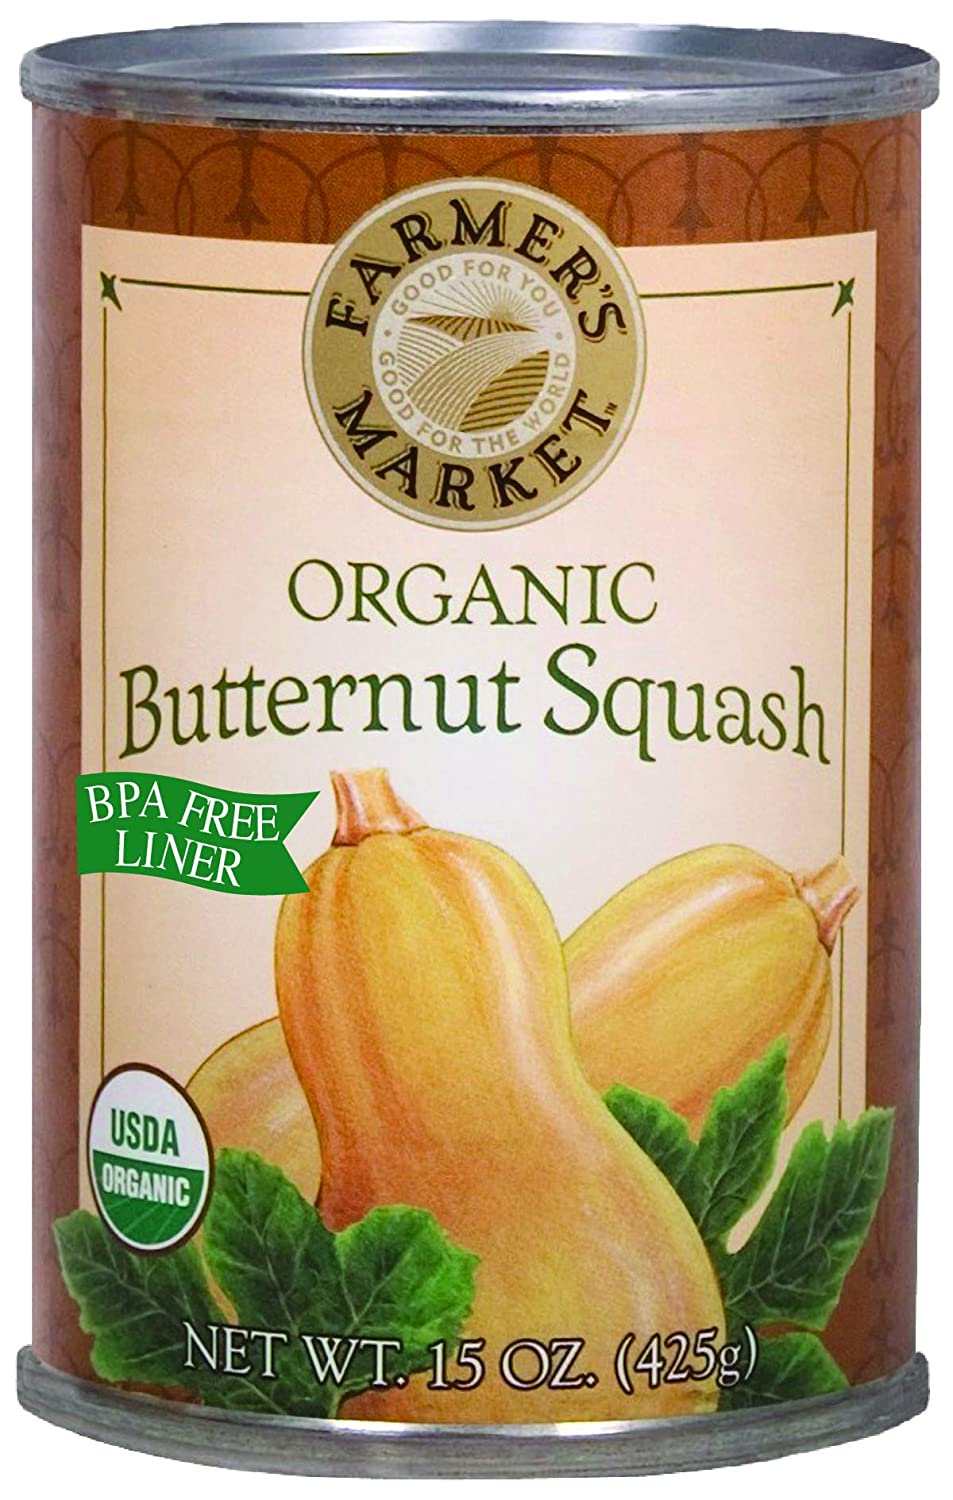 Farmer's Market Foods Canned Organic Butternut Squash Puree, 15-Ounce (Pack of 12)